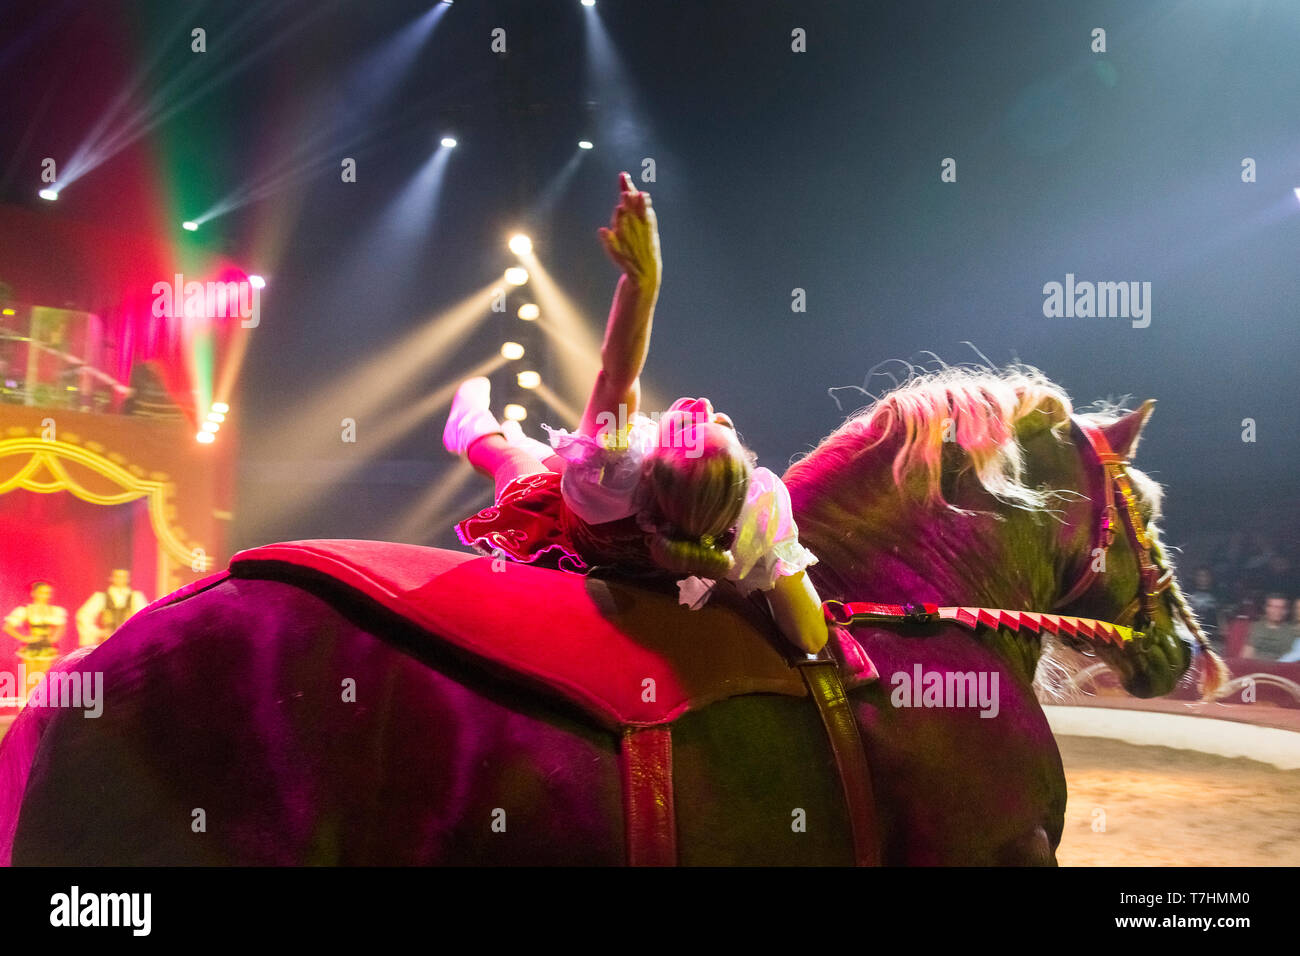 Performer lying on the back of a Russian Heavy Draft Horse during an show at the circus Louis Knie junior, Austria - Stock Image